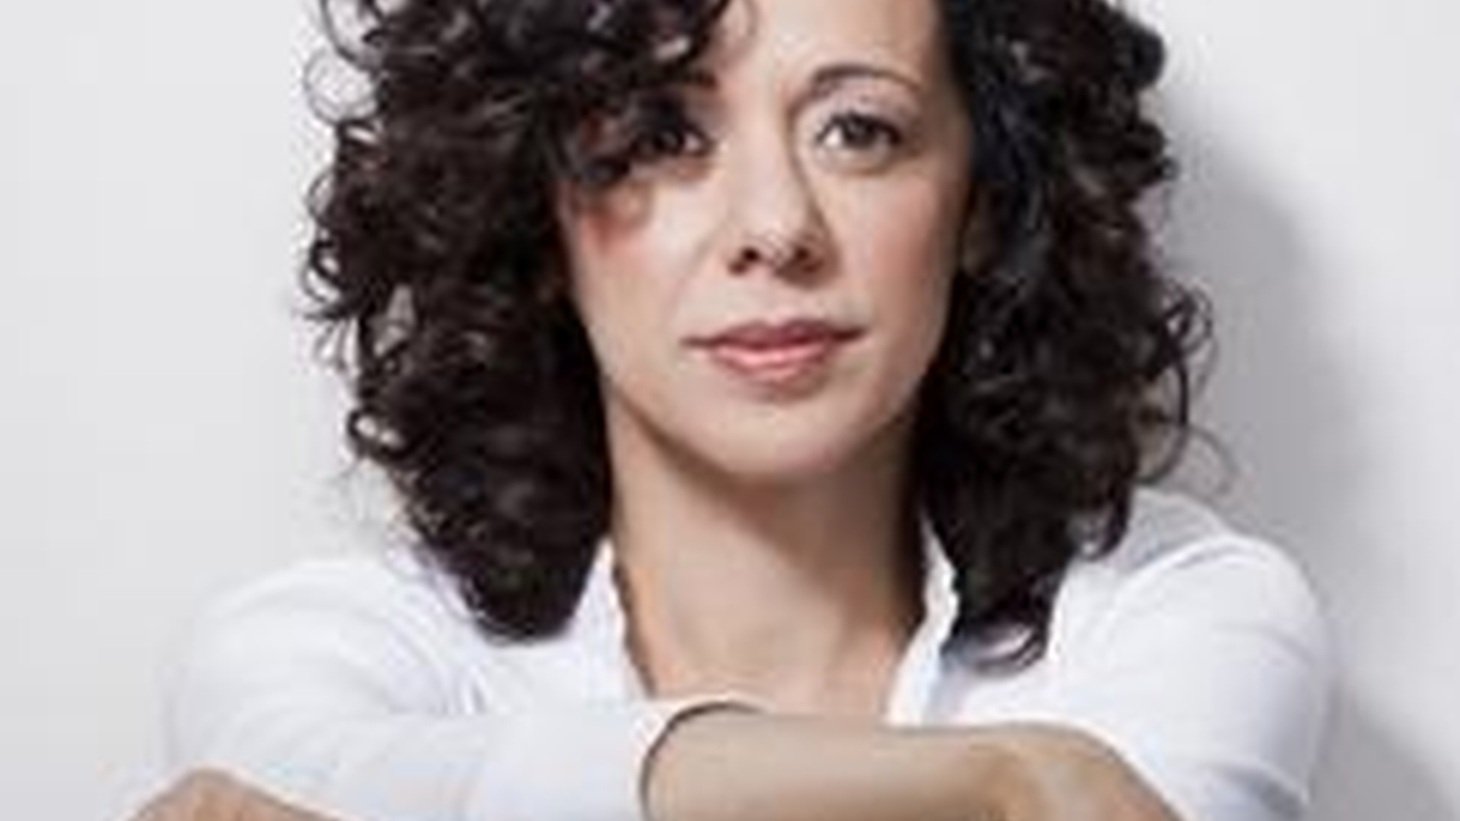 Jazzy Brazilian singer Luciana Souza shares her new work with Morning Becomes Eclectic listeners at 11:15am. Tom Schnabel sits in for Jason Bentley from 9am to noon.